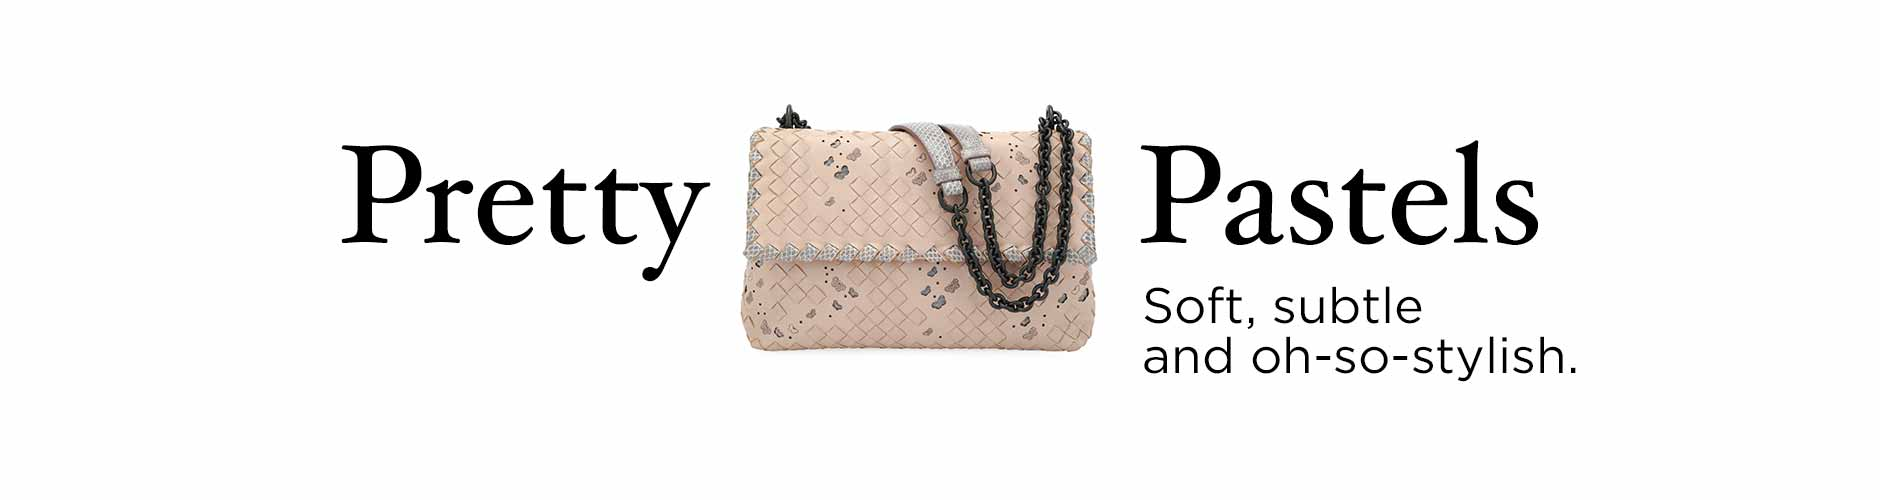 Spring Collections - Trend: Pretty Pastels Handbags